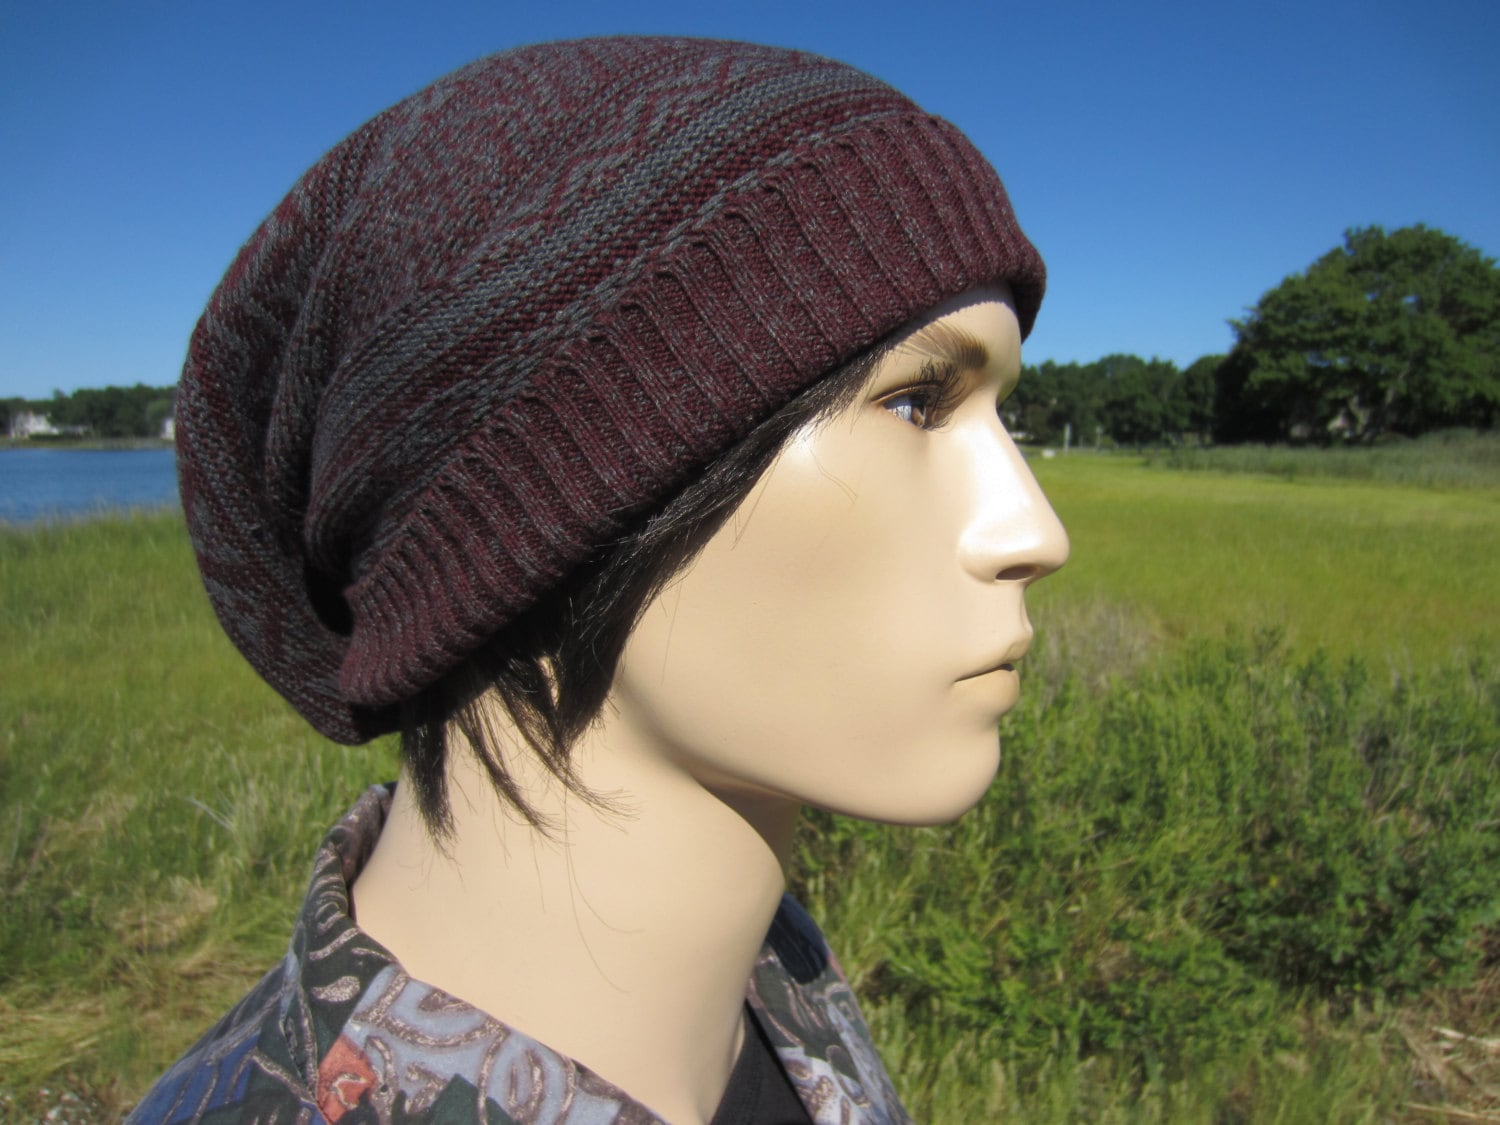 Big Slouchy Beanie Hat Fair Isle Knit Stocking Cap Burgundy   Gray Cotton  Oversized Baggy Tam for Men A1638 d71da654c93